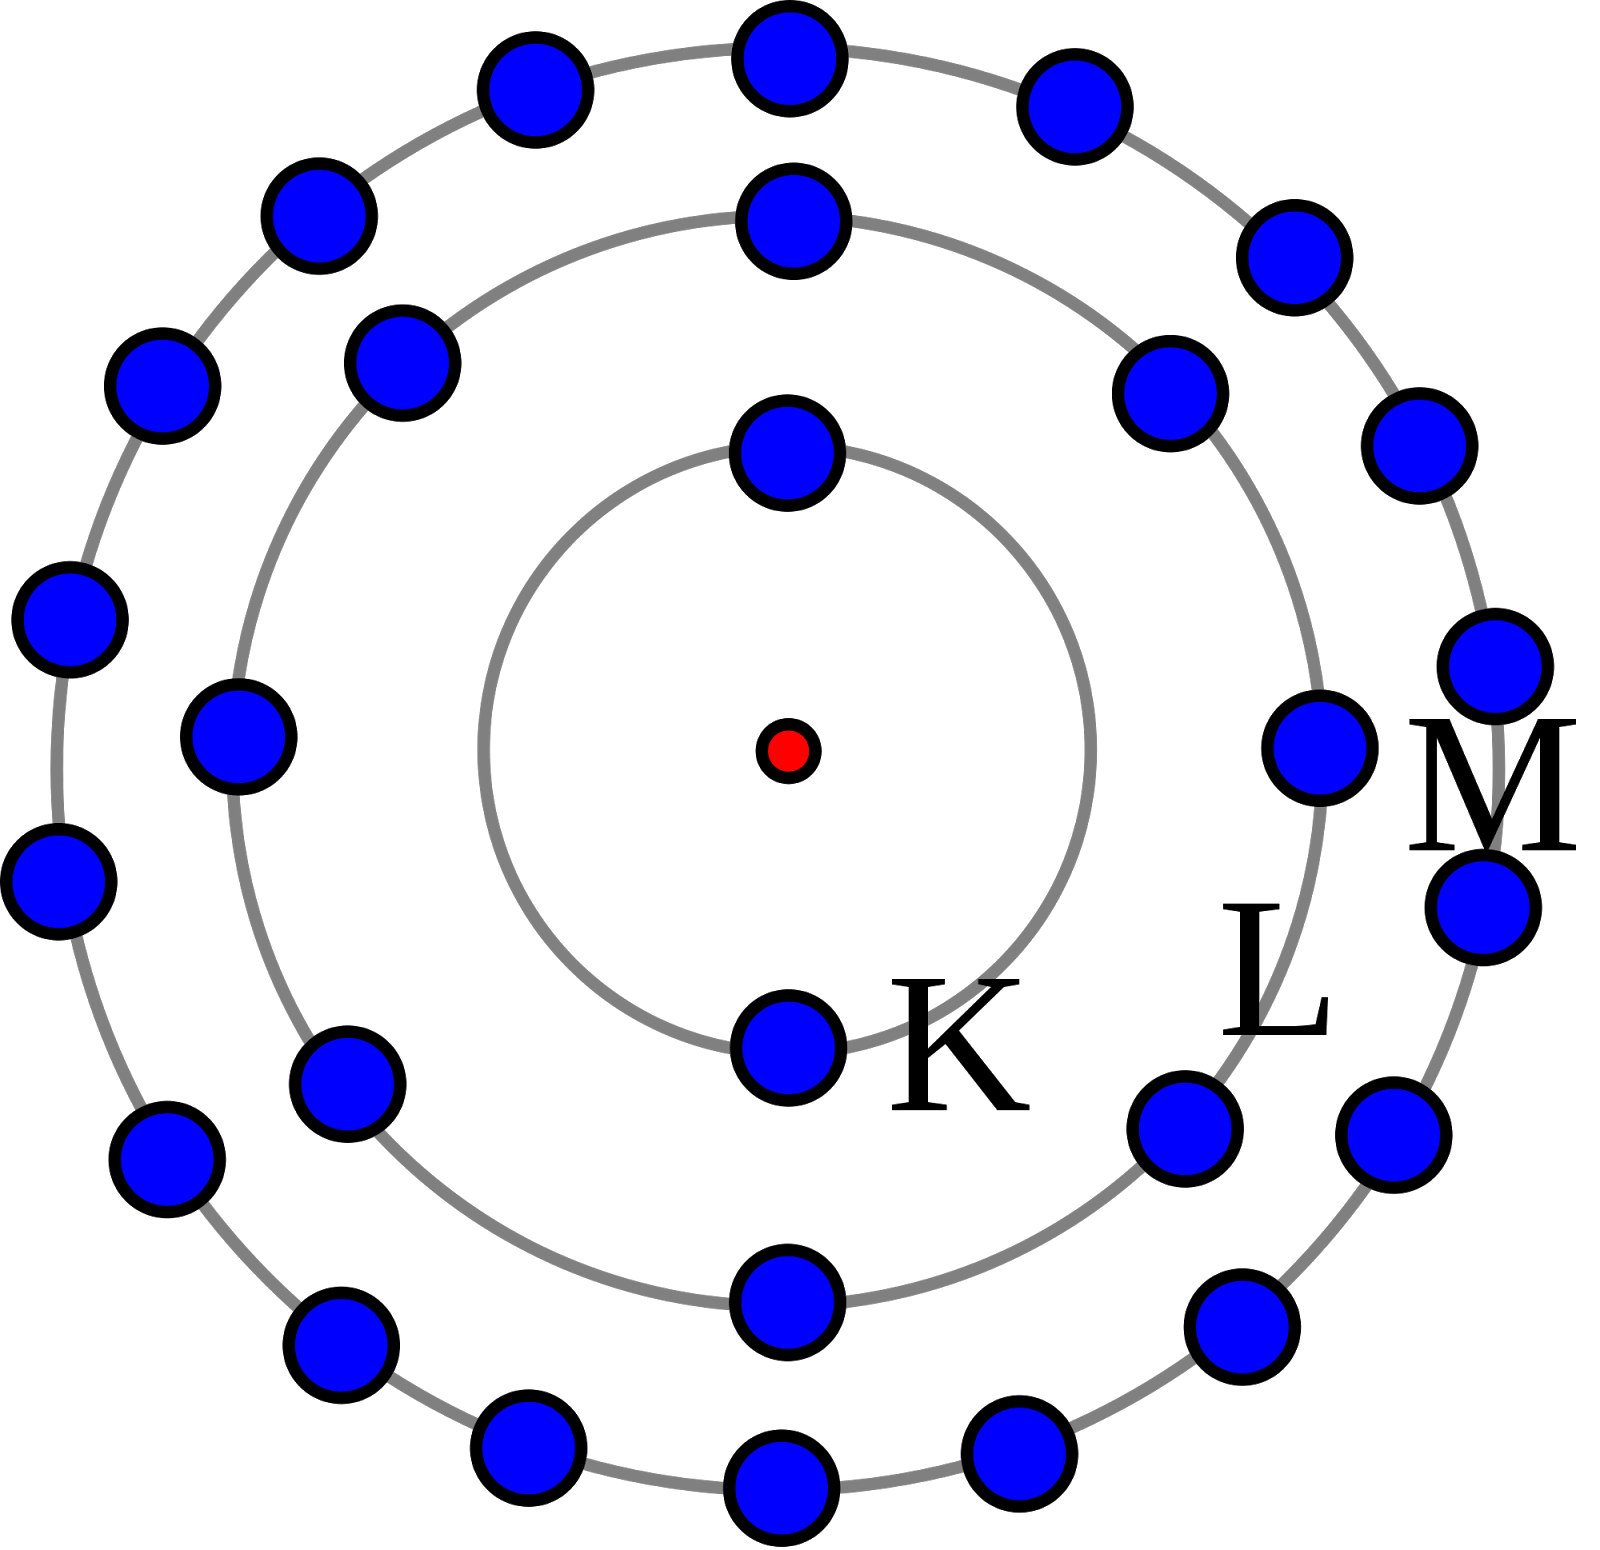 Drawback Of Rutherford Atomic Model And Postulates Of Bohr